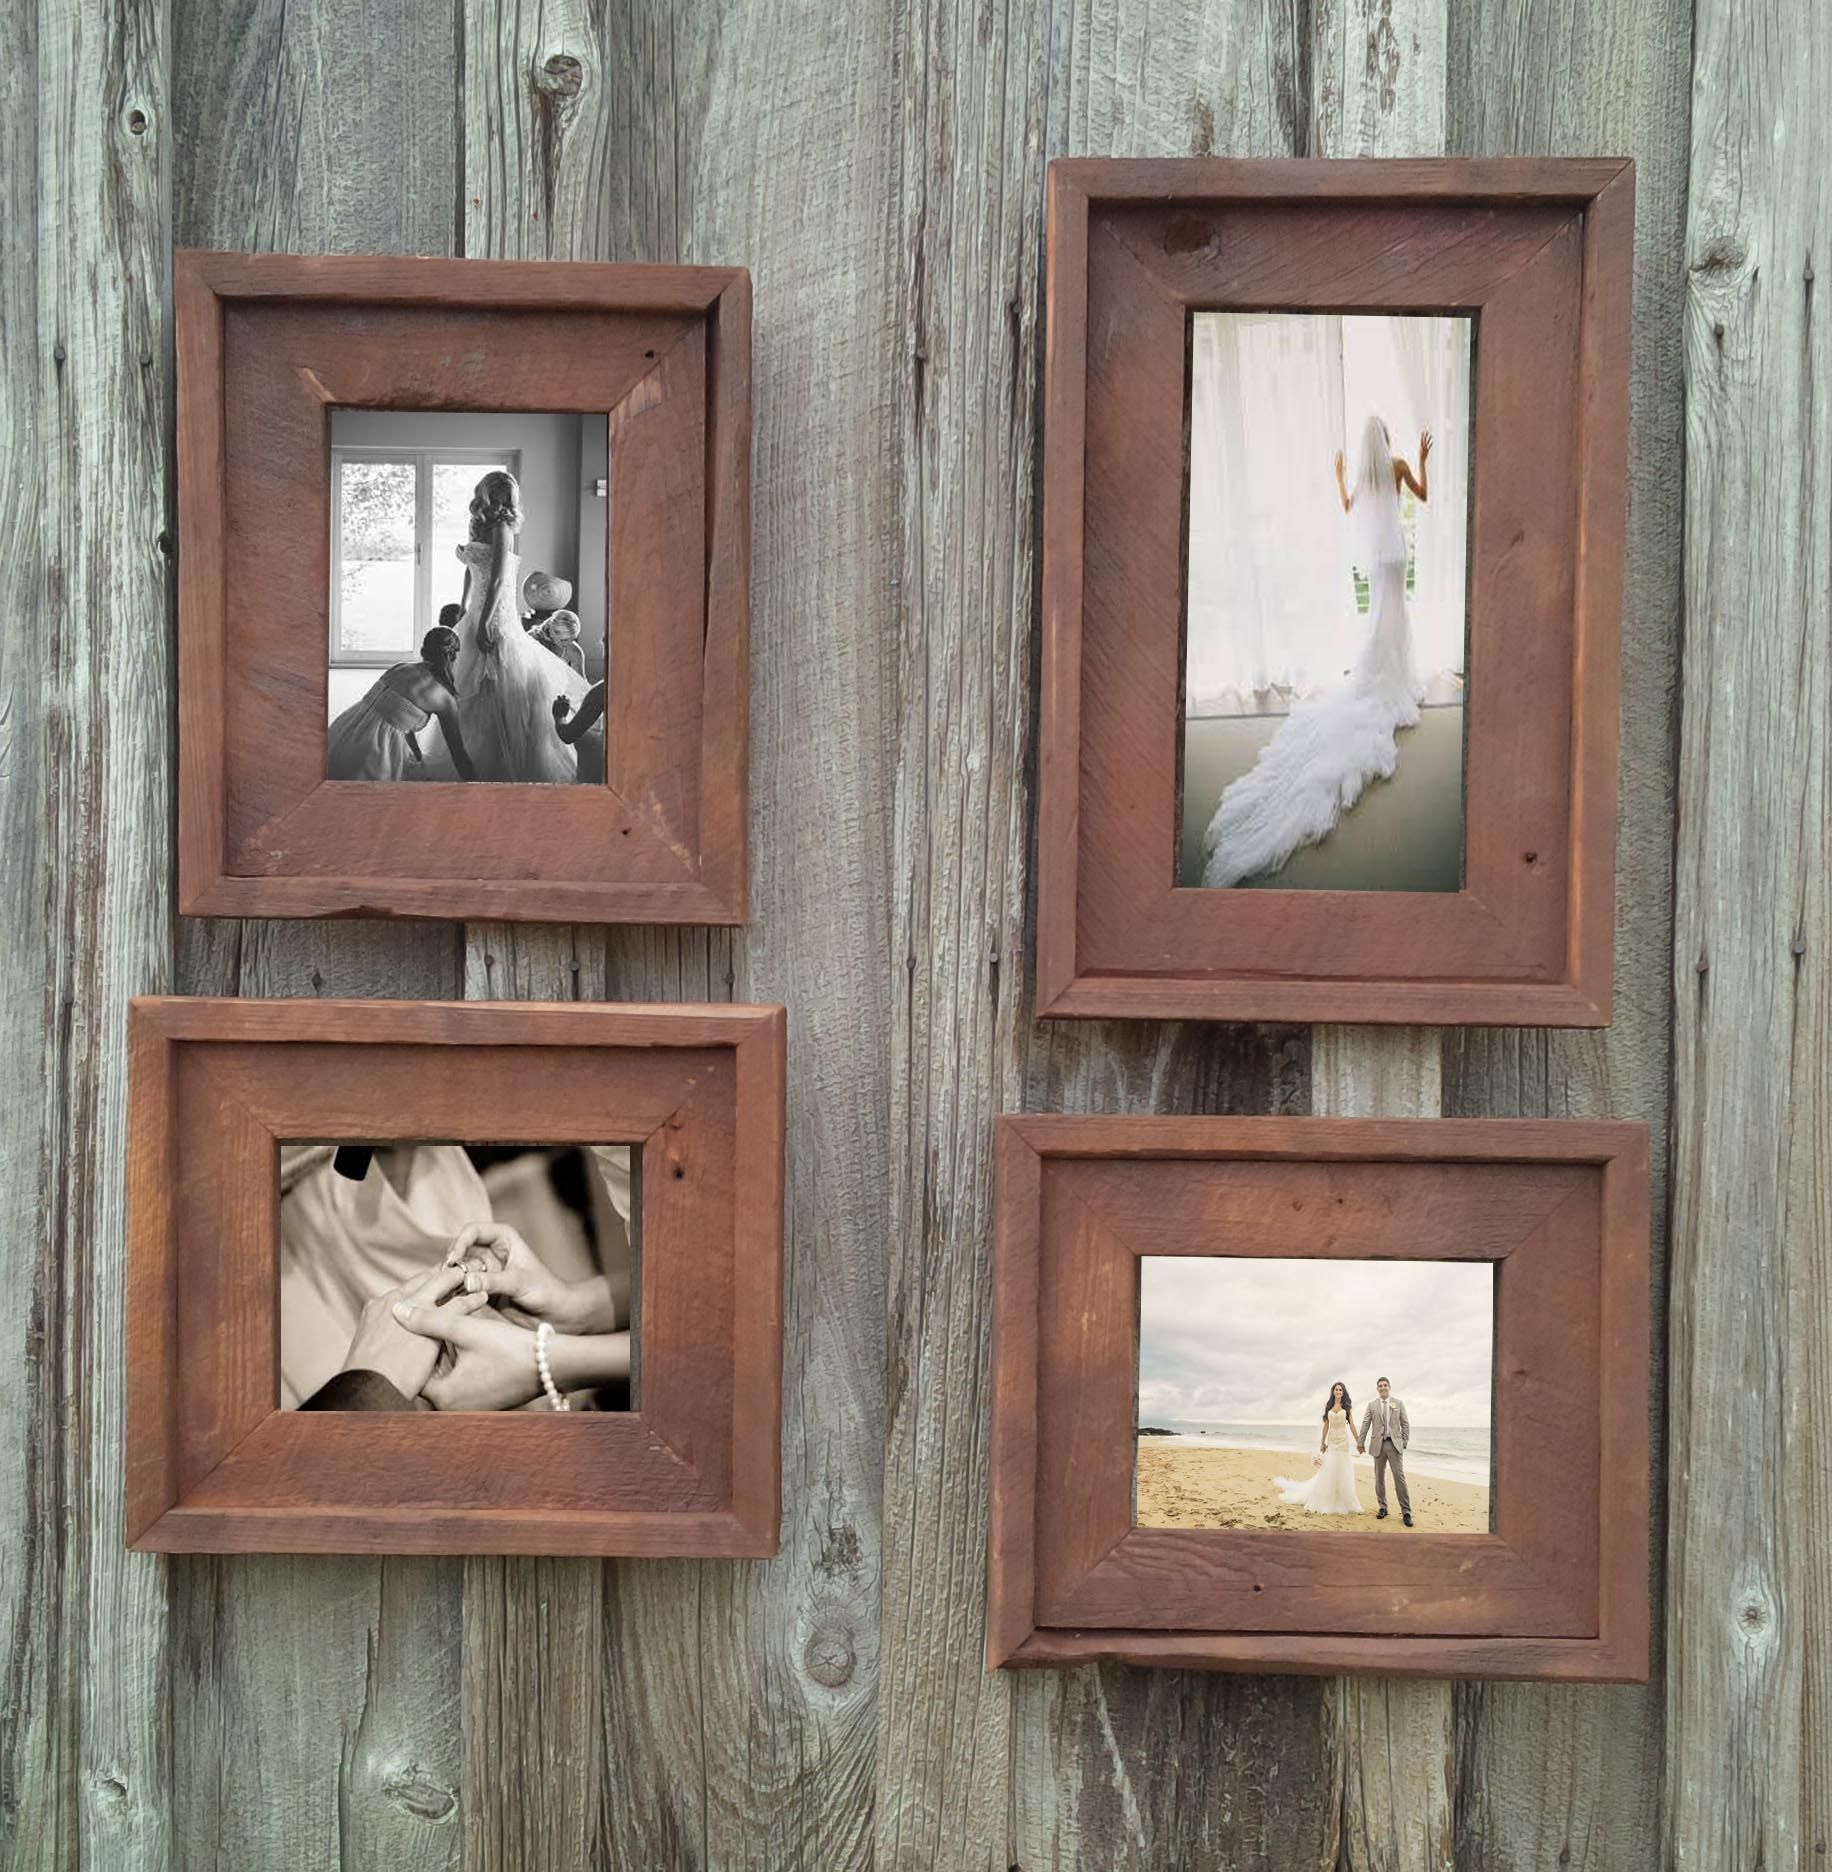 barn wood picture frames. Gallery Wall - The Loft Signature Quality Handmade Rustic Barn Wood Picture Frames Www.TheLoftBarnWoodFrame